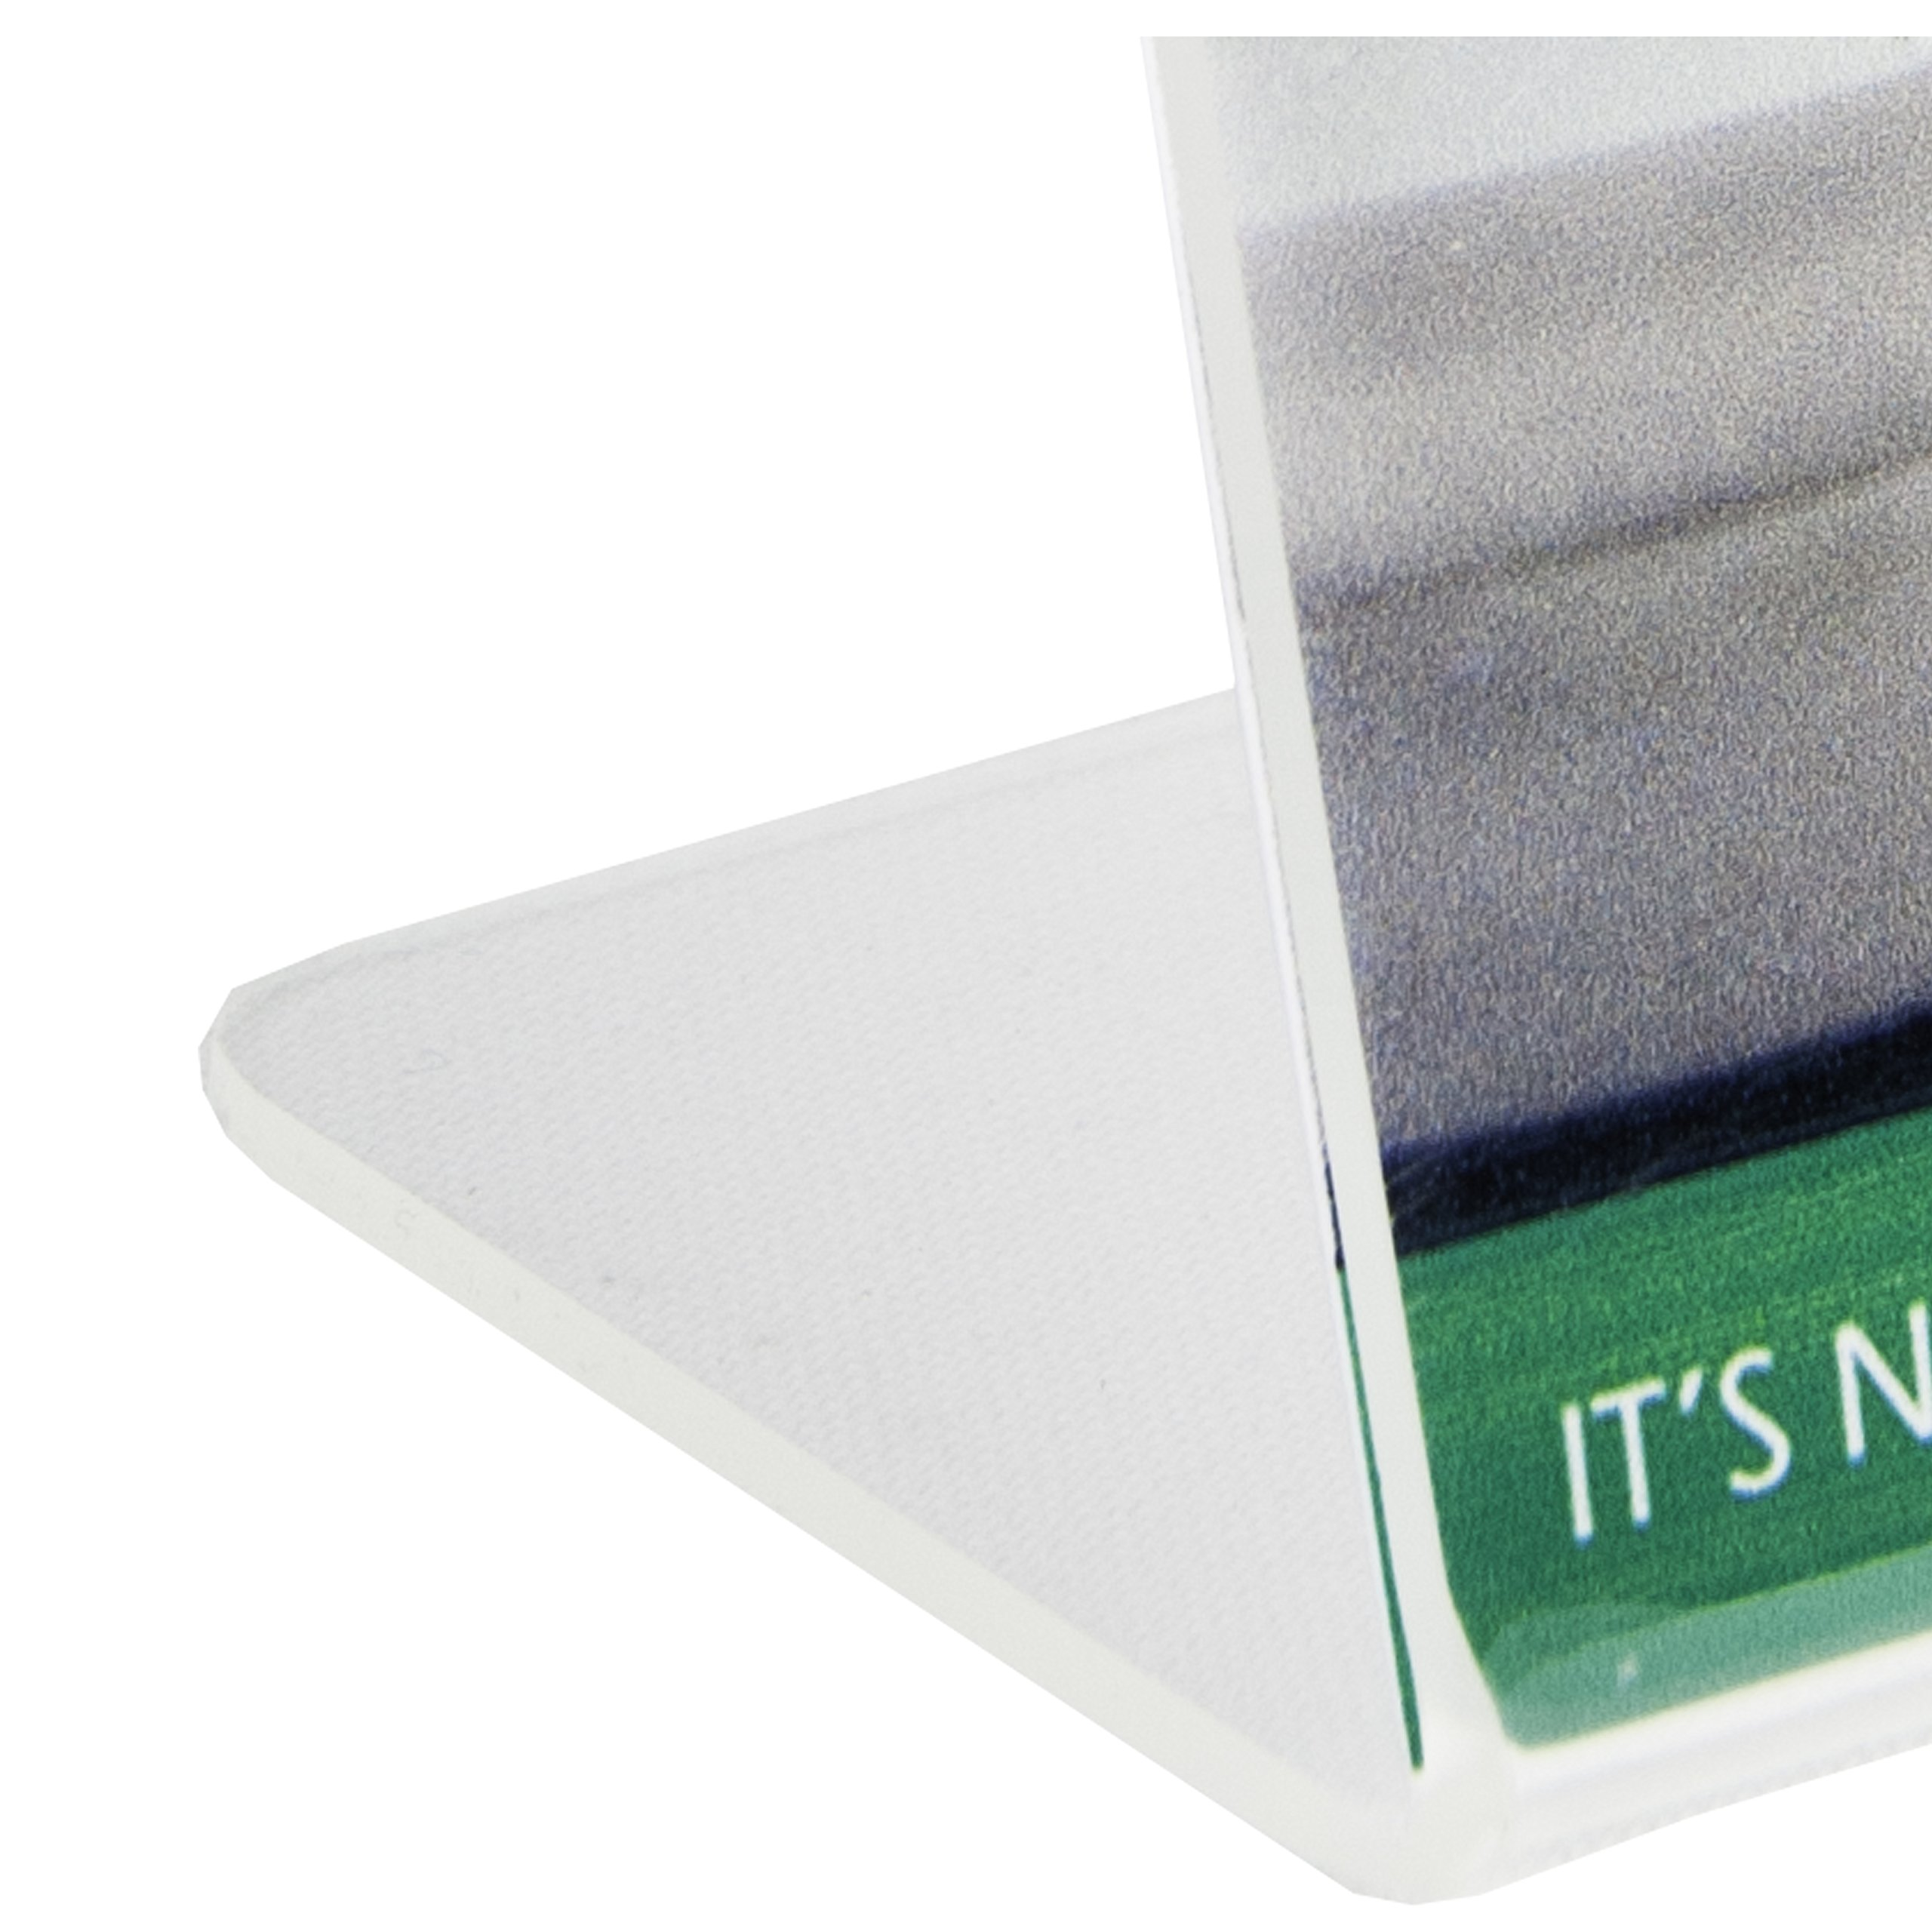 Clear-Ad - LHA-46 - Acrylic Slanted Sign Holder 4x6 - Plexiglass Table Menu Card Display Stand - Plastic Picture Frame Wholesale (Pack of 100) by Clear-Ad (Image #6)